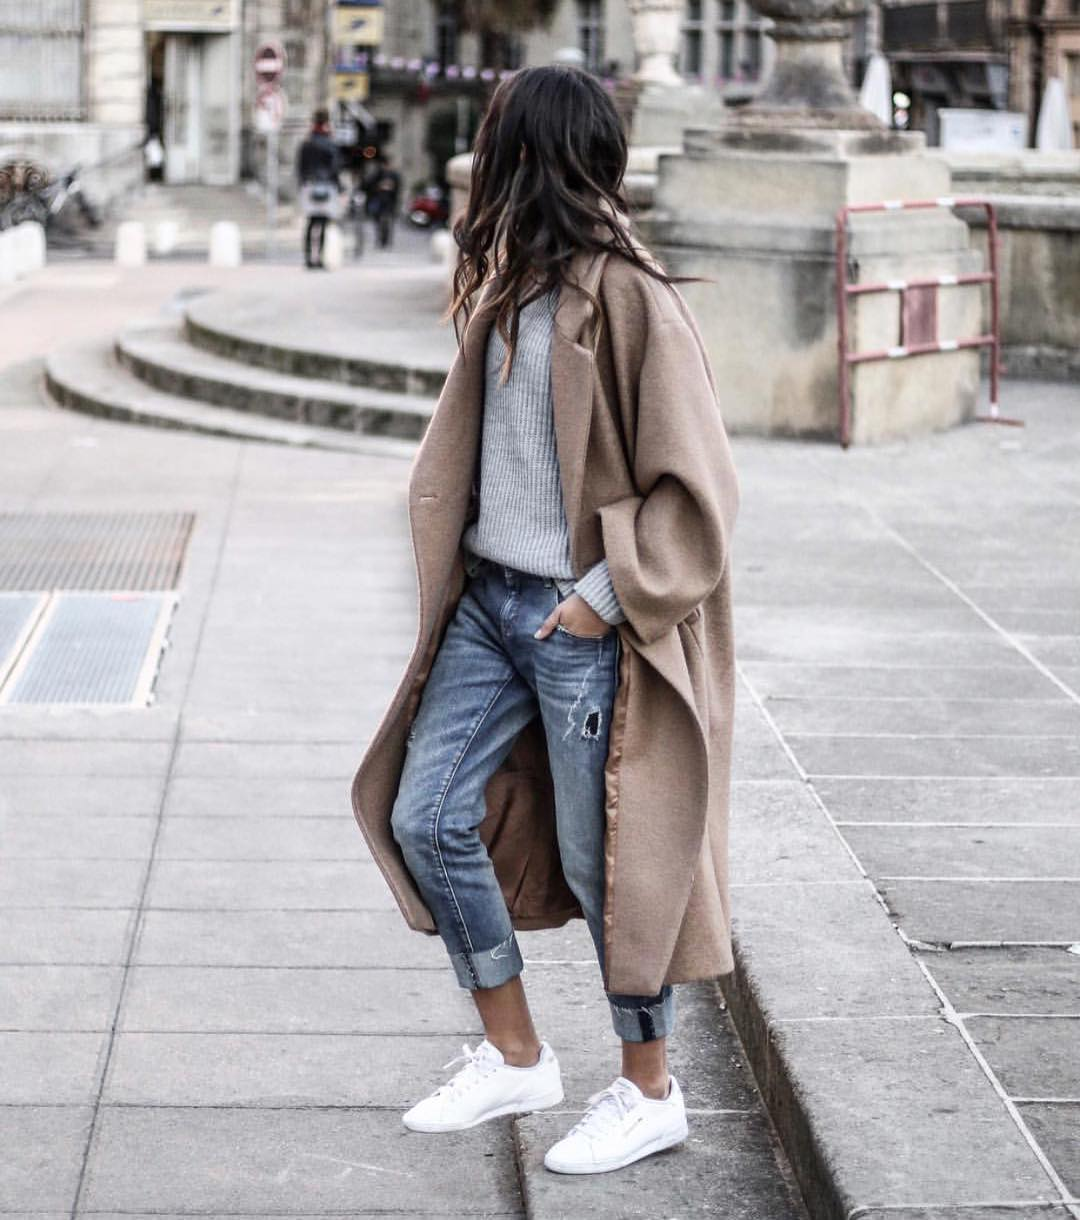 Oversized Grey Coat With Sweater Teamed With Cuffed Jeans And White Sneakers 2019